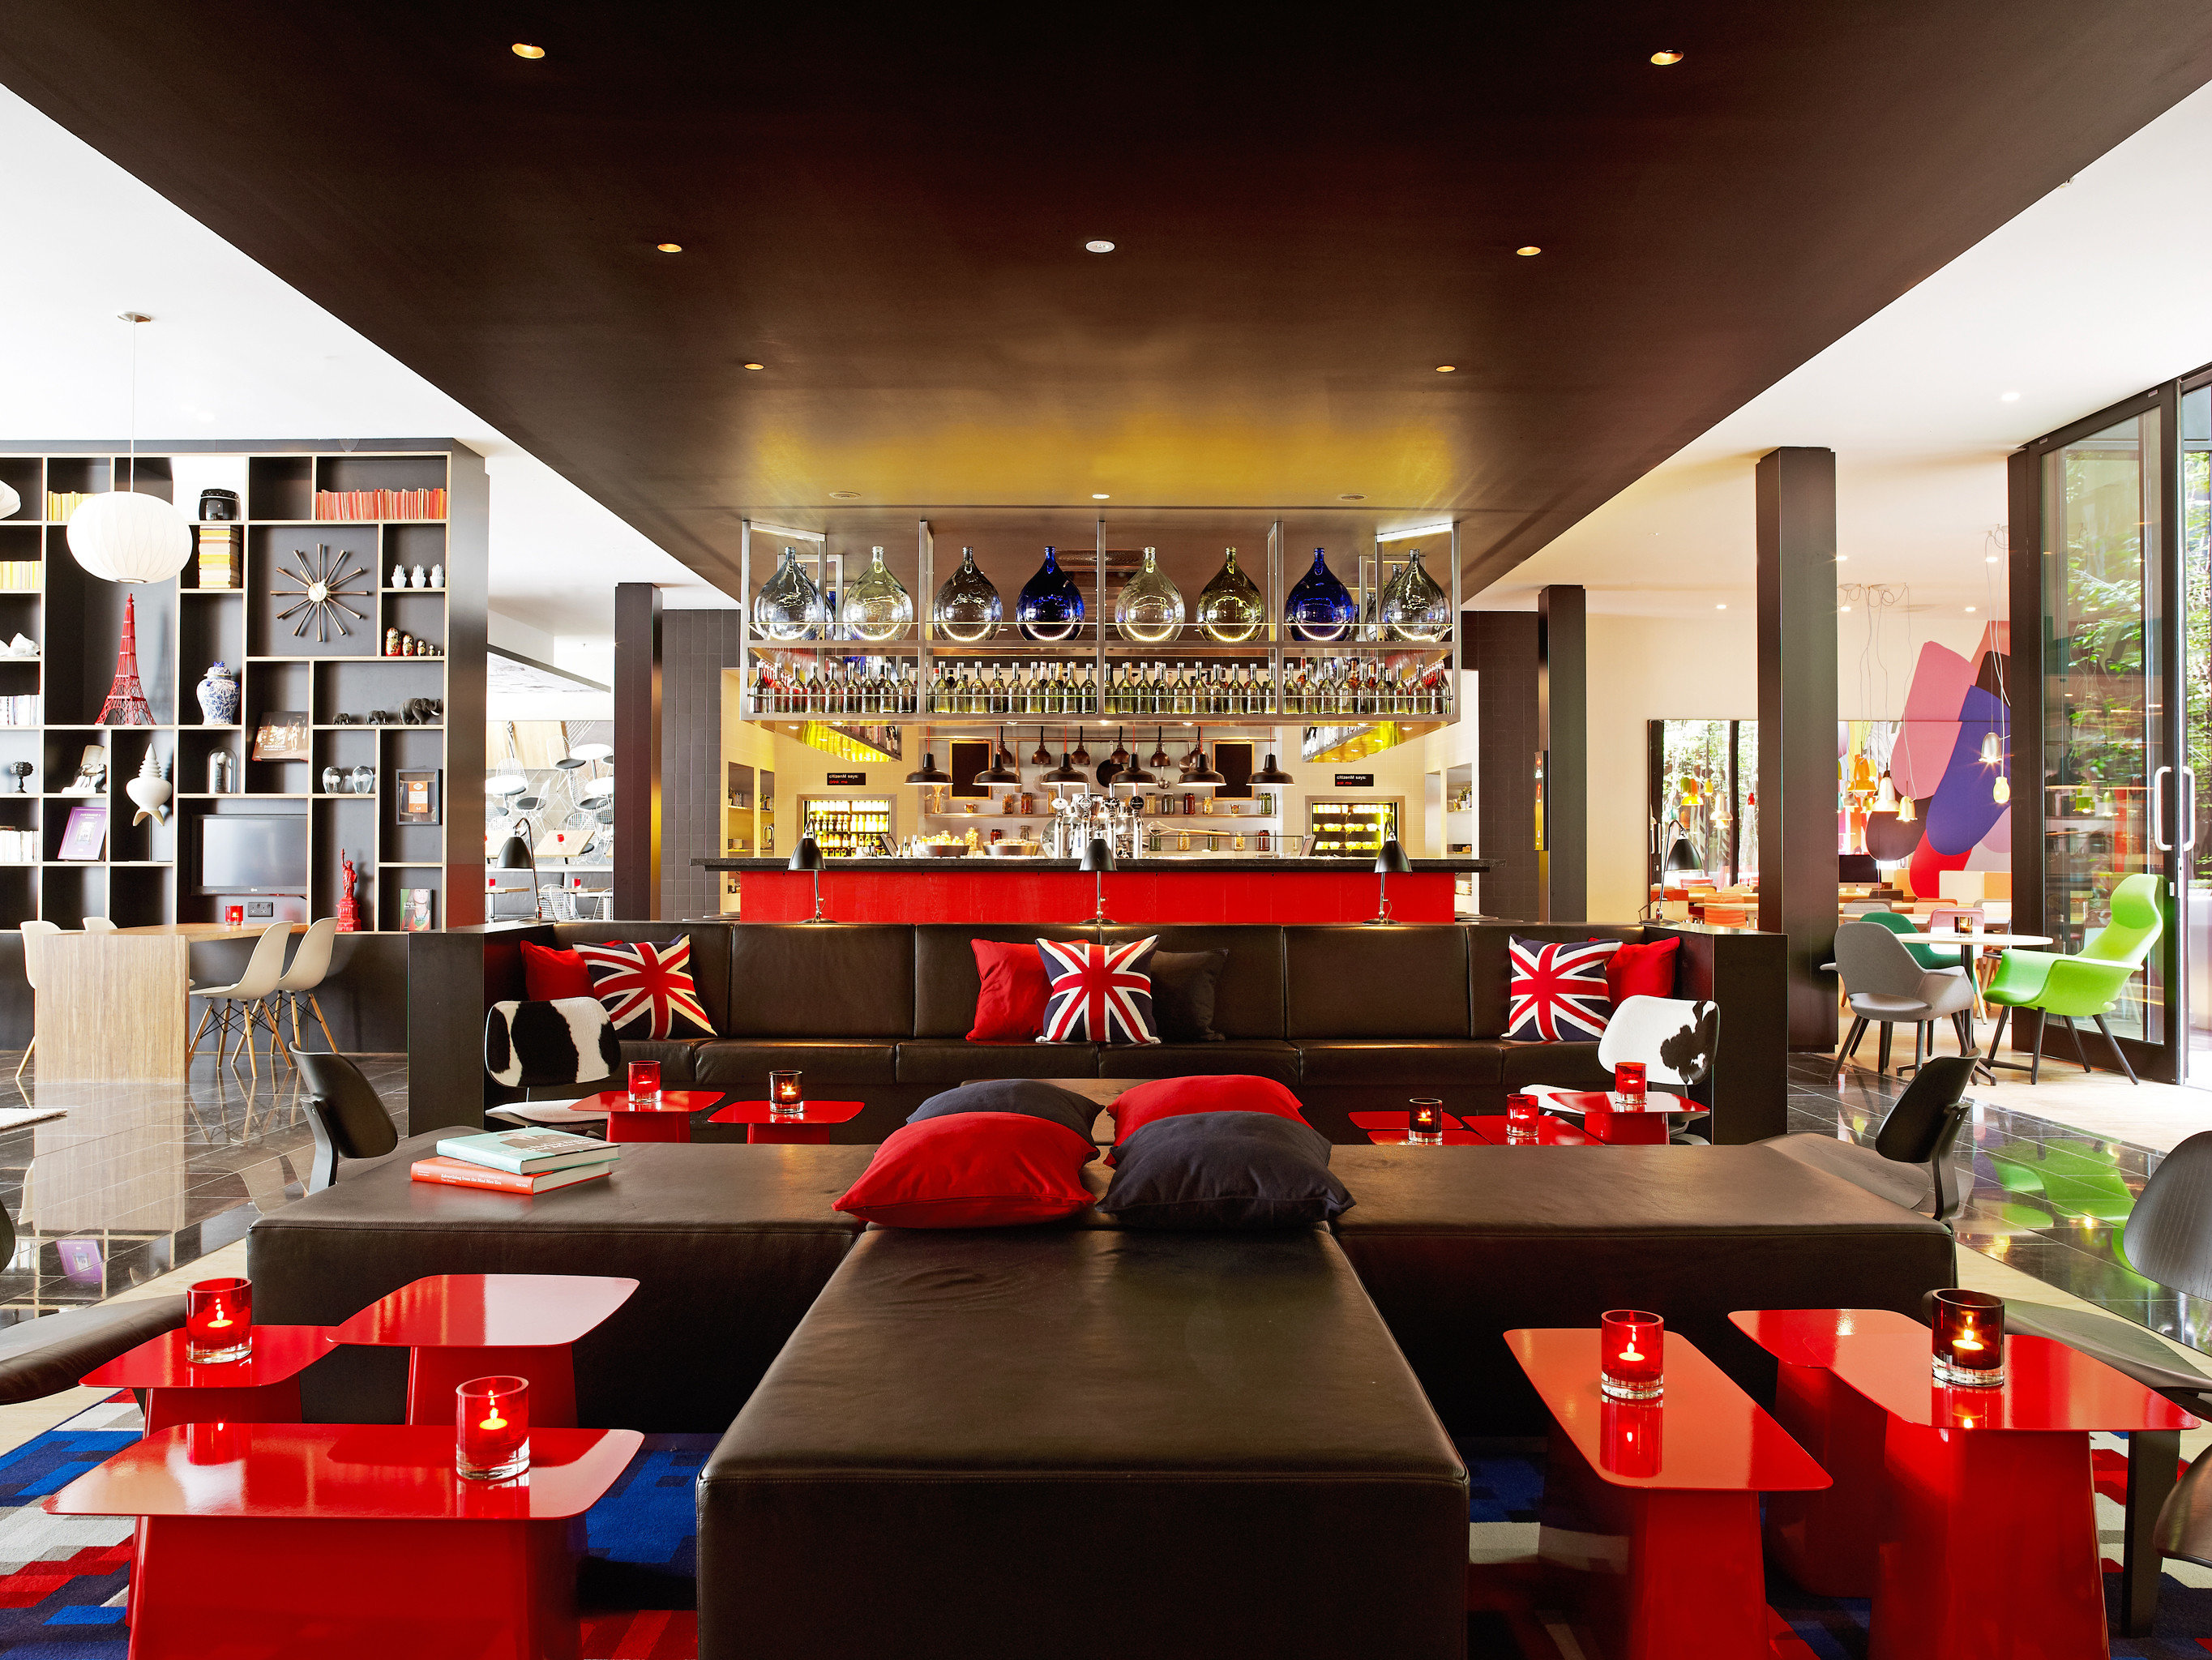 Budget Hotels London ceiling indoor table window room restaurant interior design Design Bar area office several